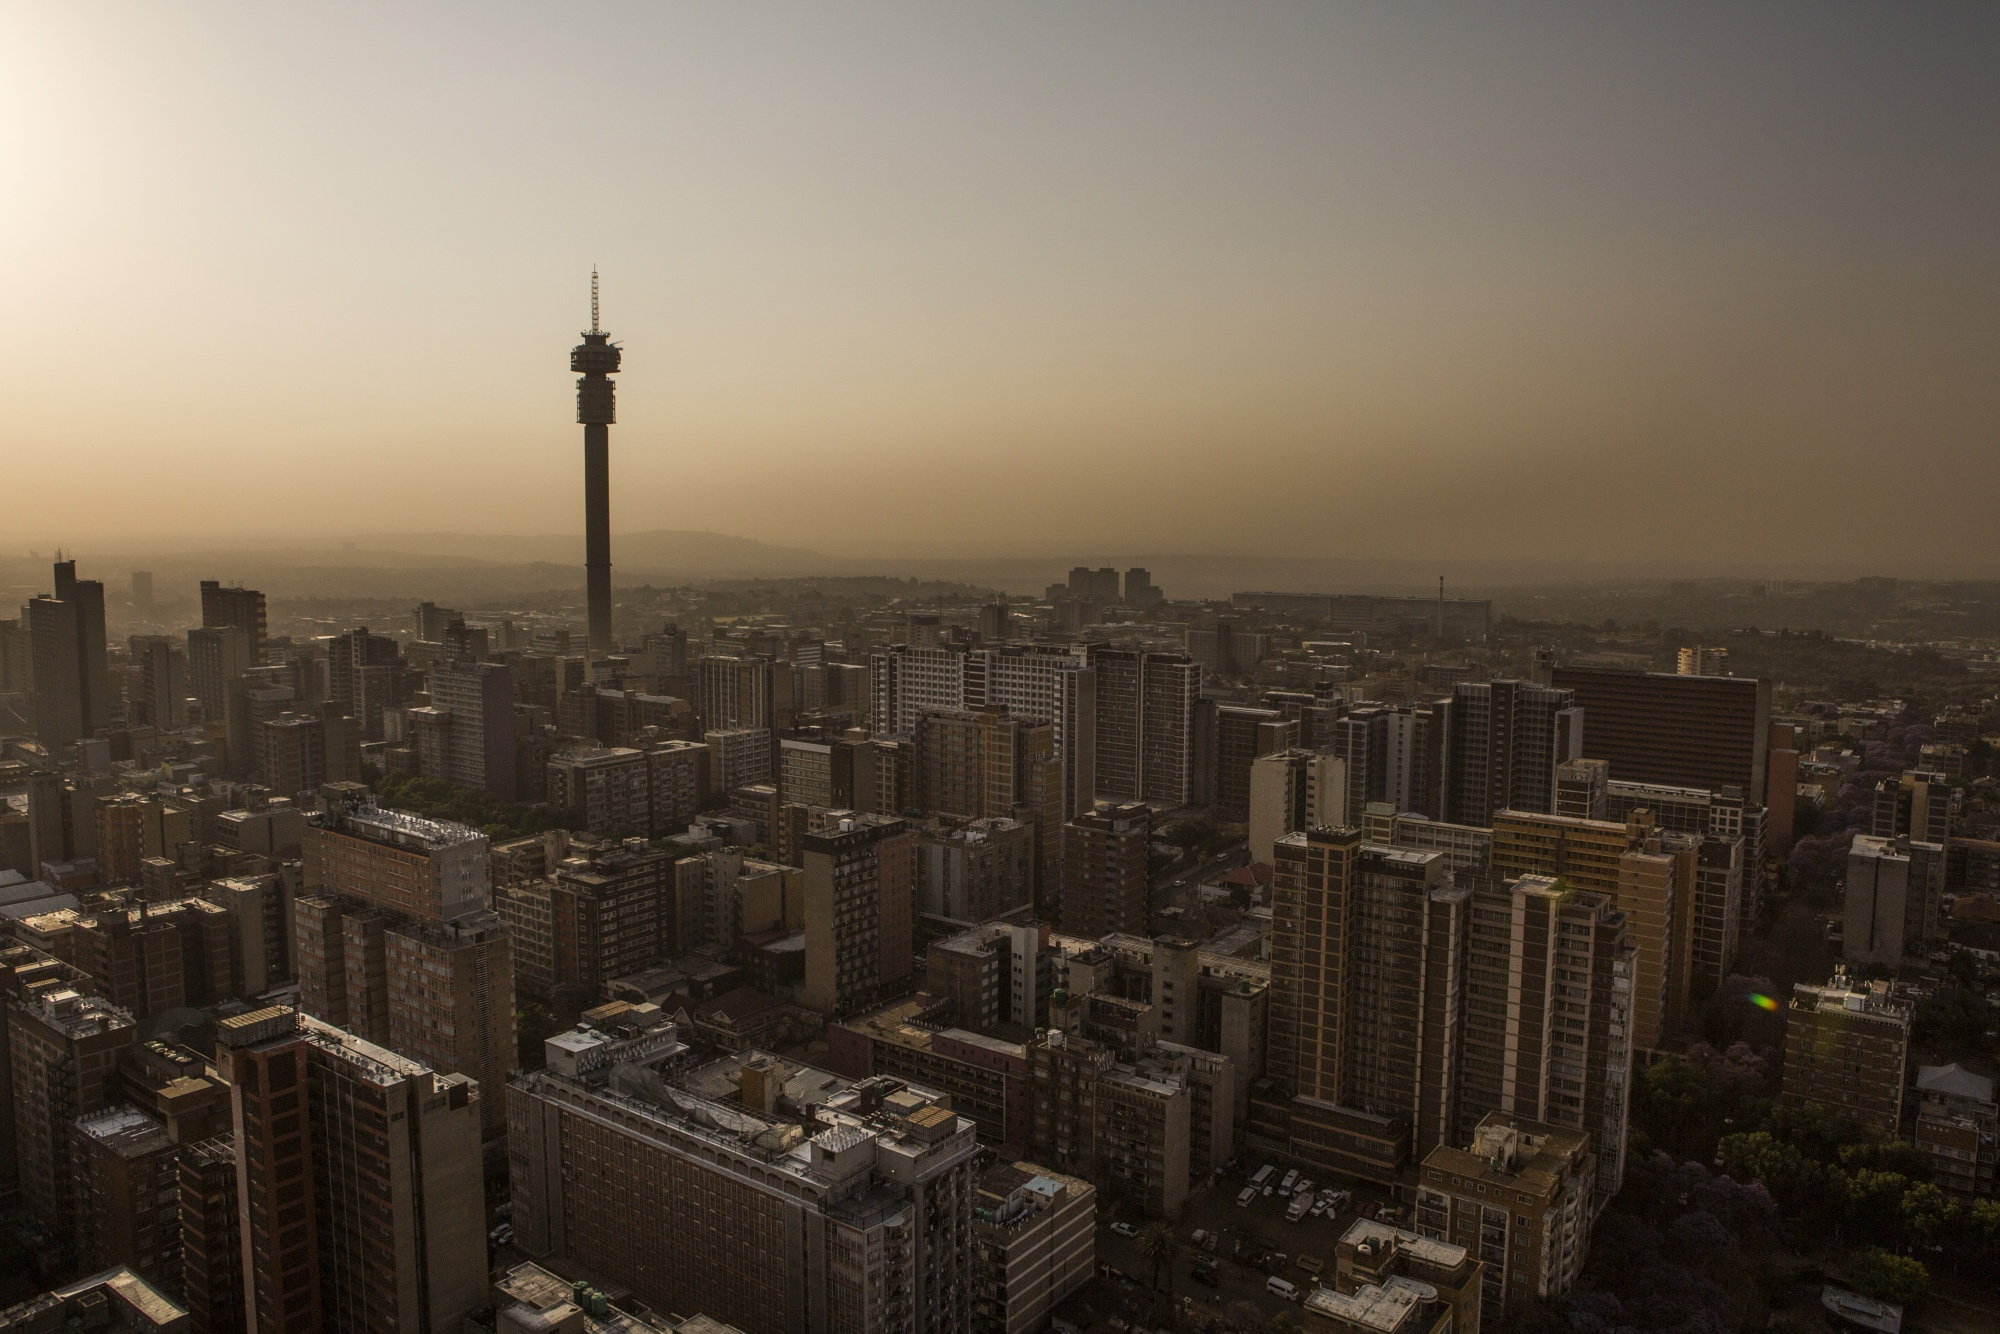 Johannesburg City Crippled as Hacker Demands Bitcoin Ransom